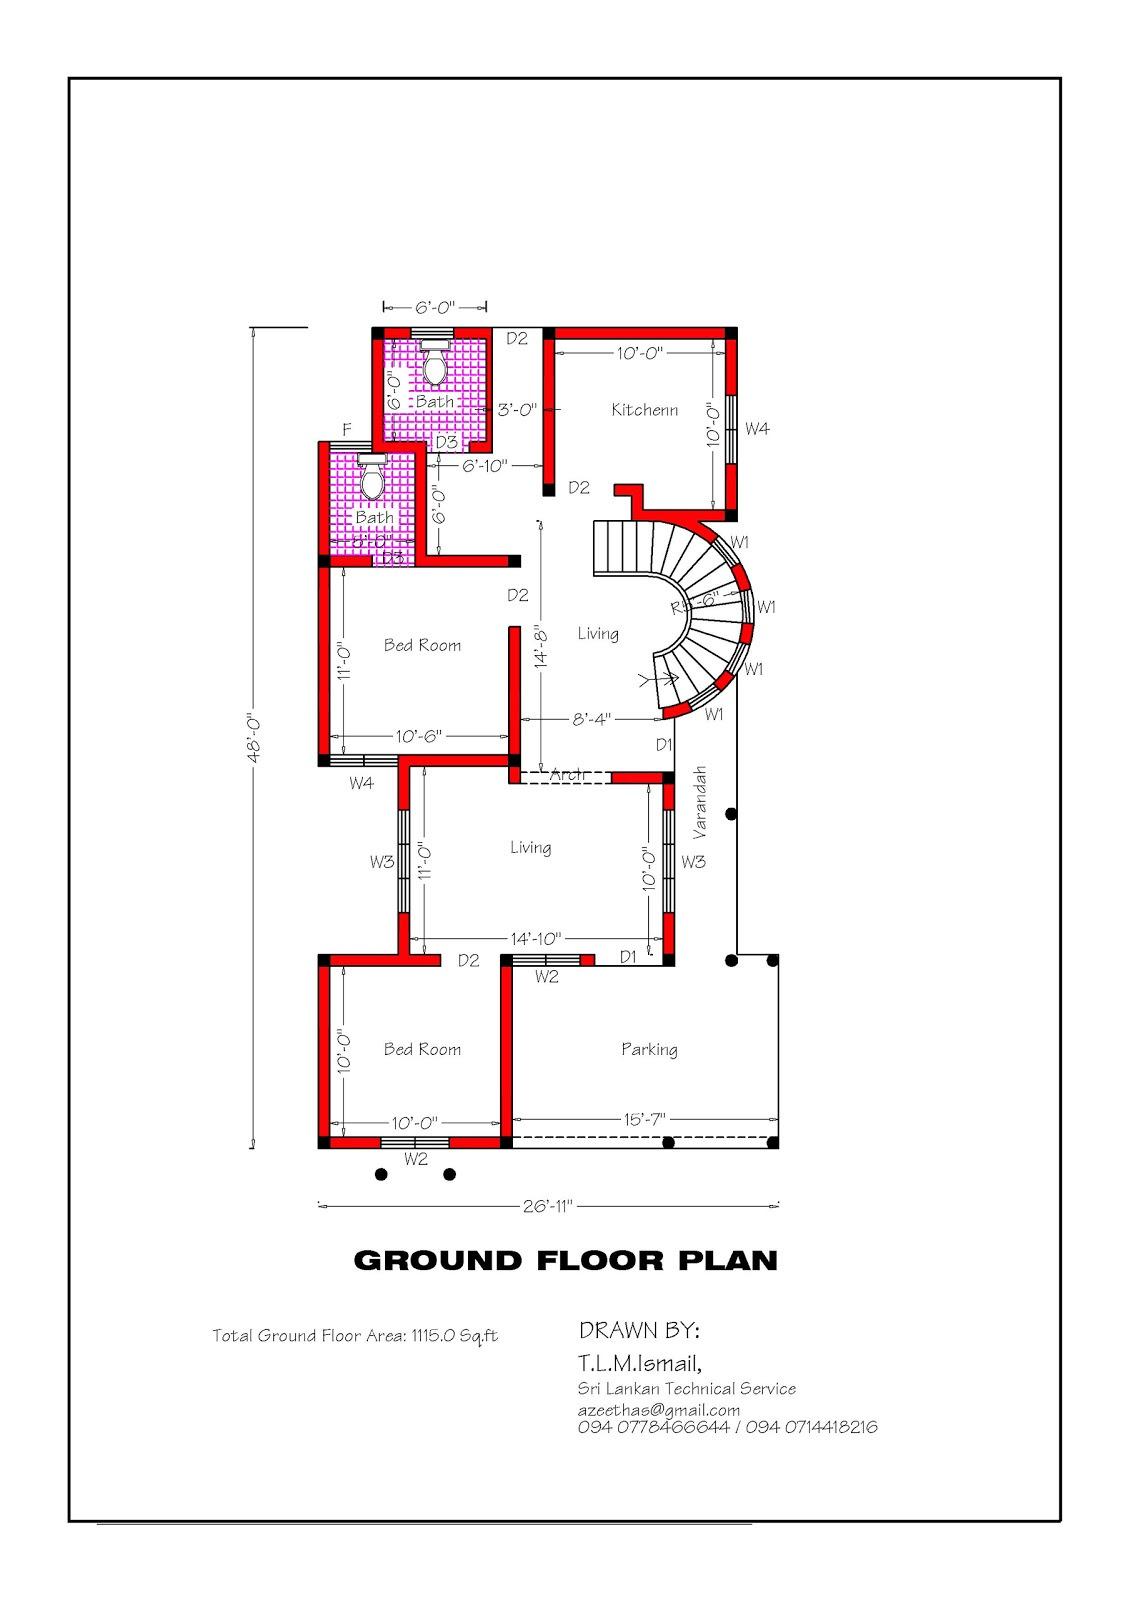 House Building Plans software Free Beautiful Home theater Design Home Design software Free